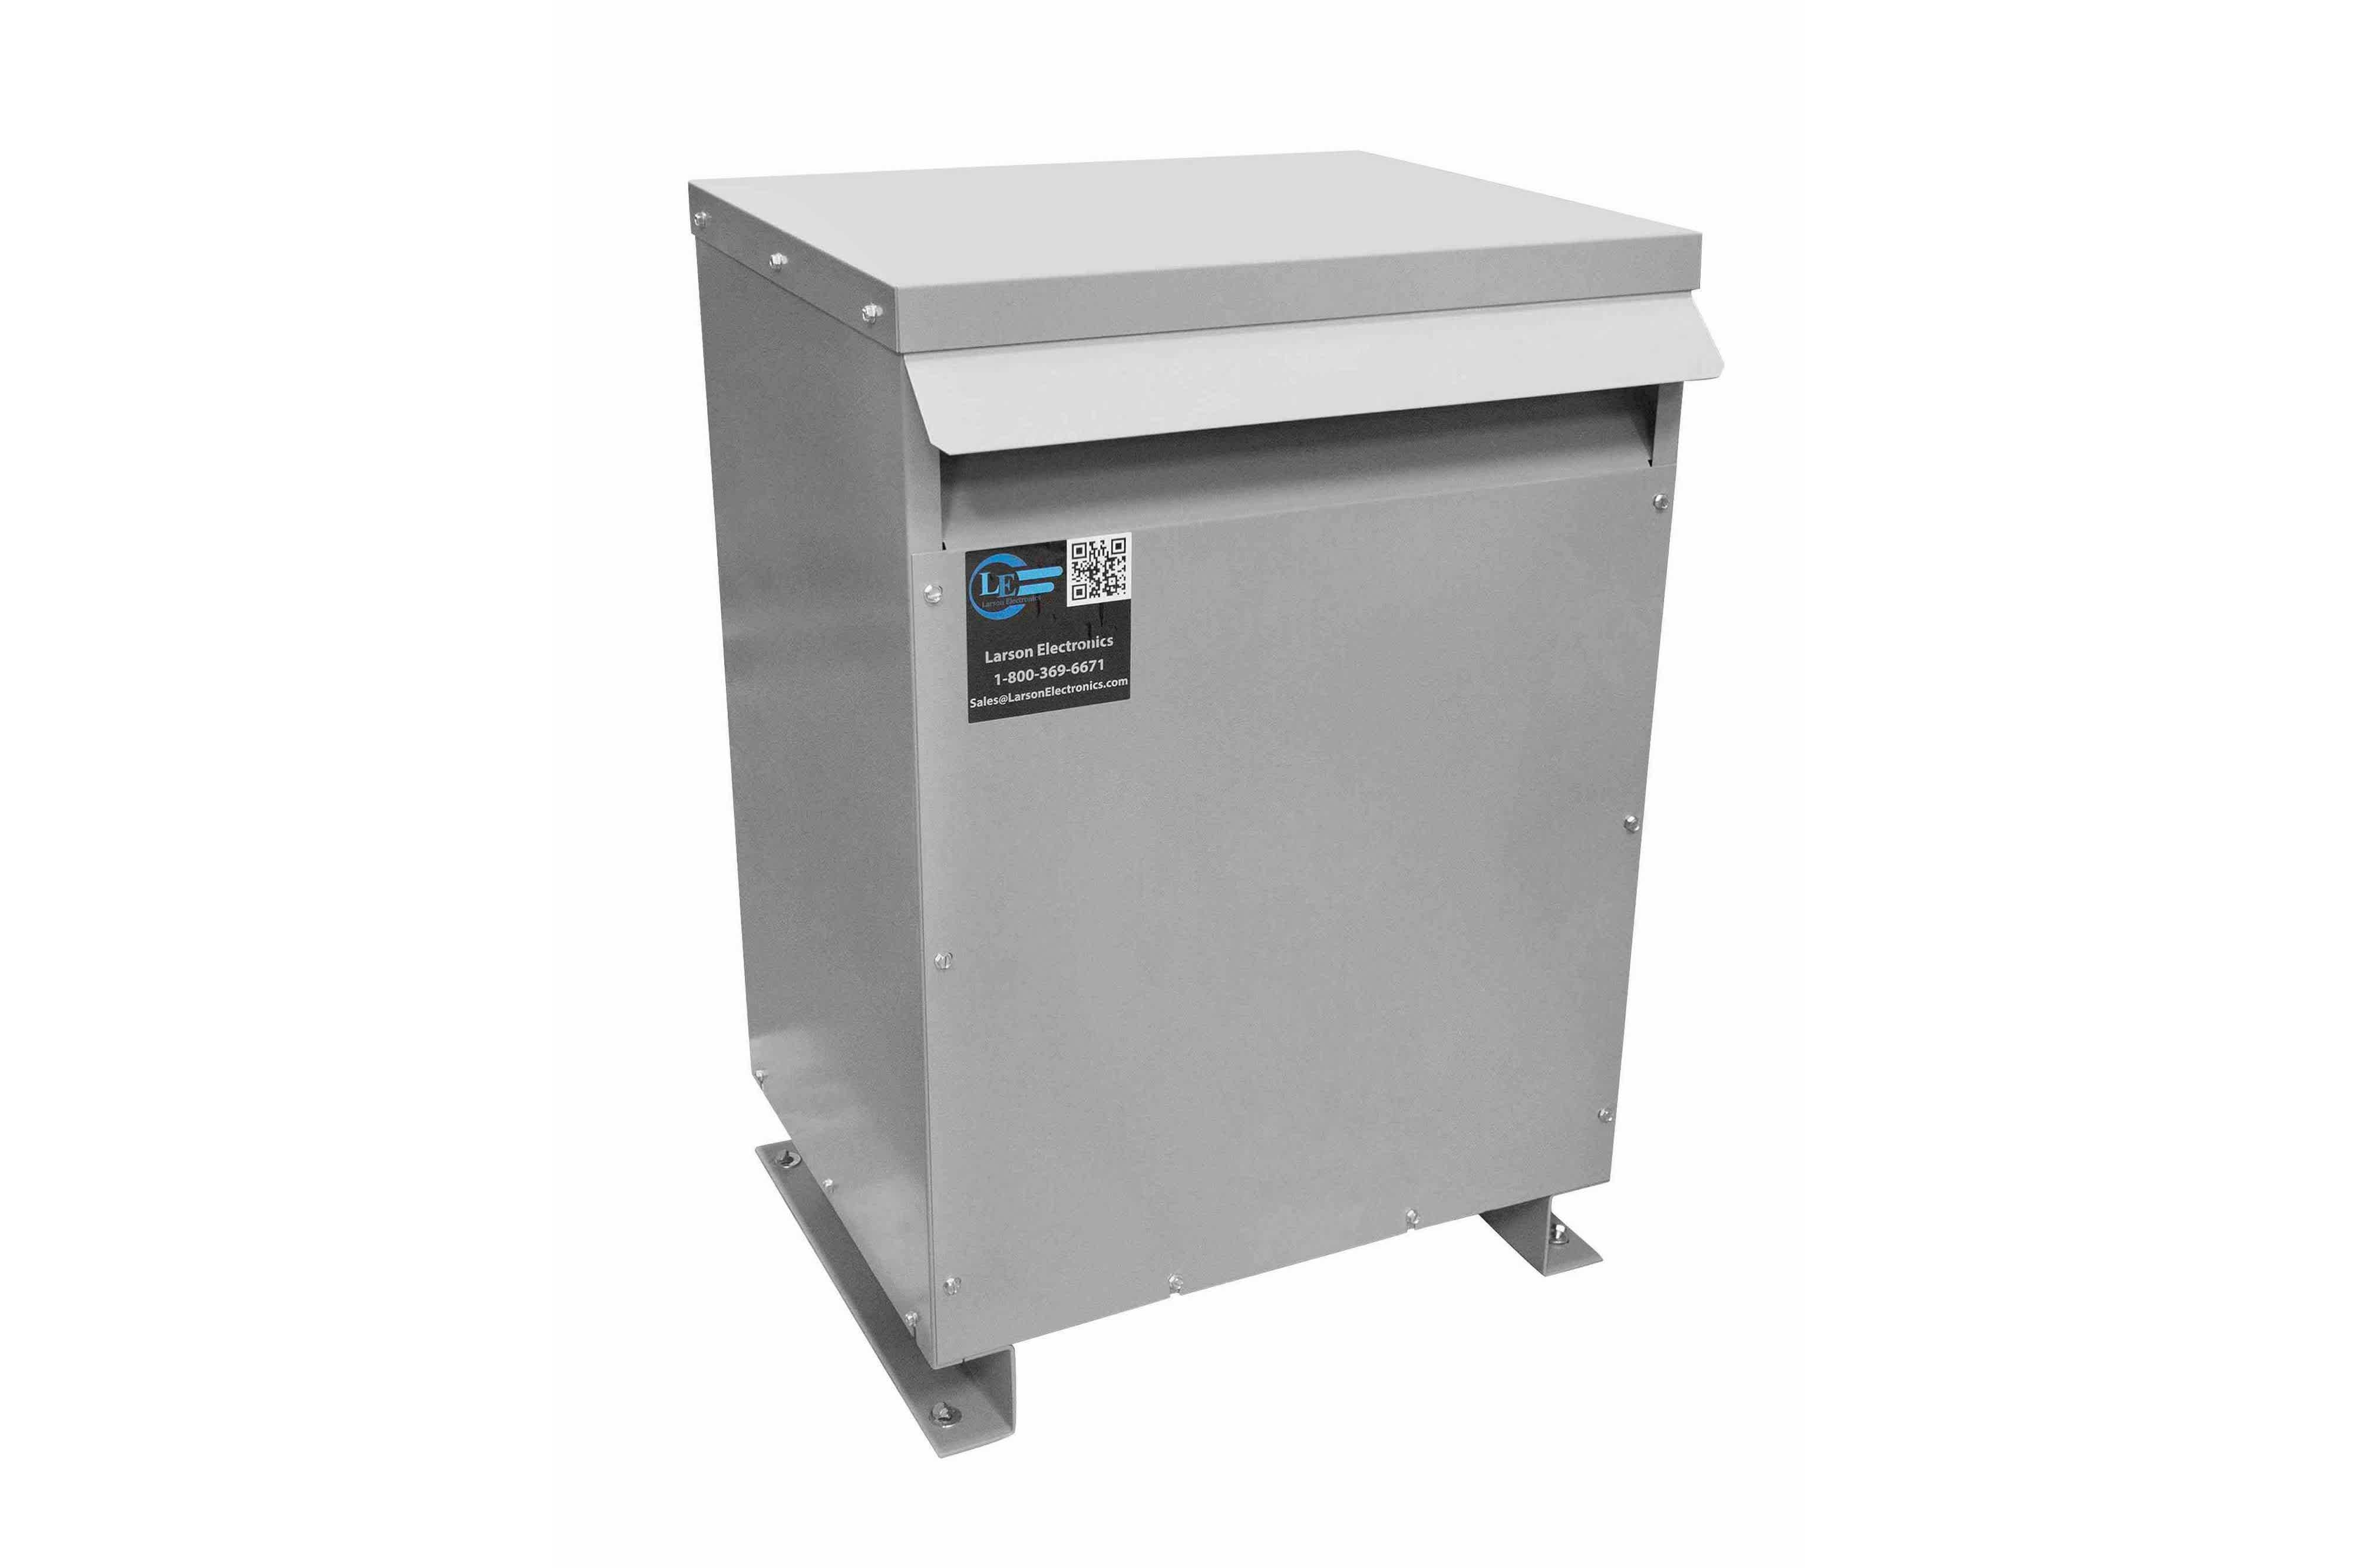 250 kVA 3PH DOE Transformer, 460V Delta Primary, 400Y/231 Wye-N Secondary, N3R, Ventilated, 60 Hz